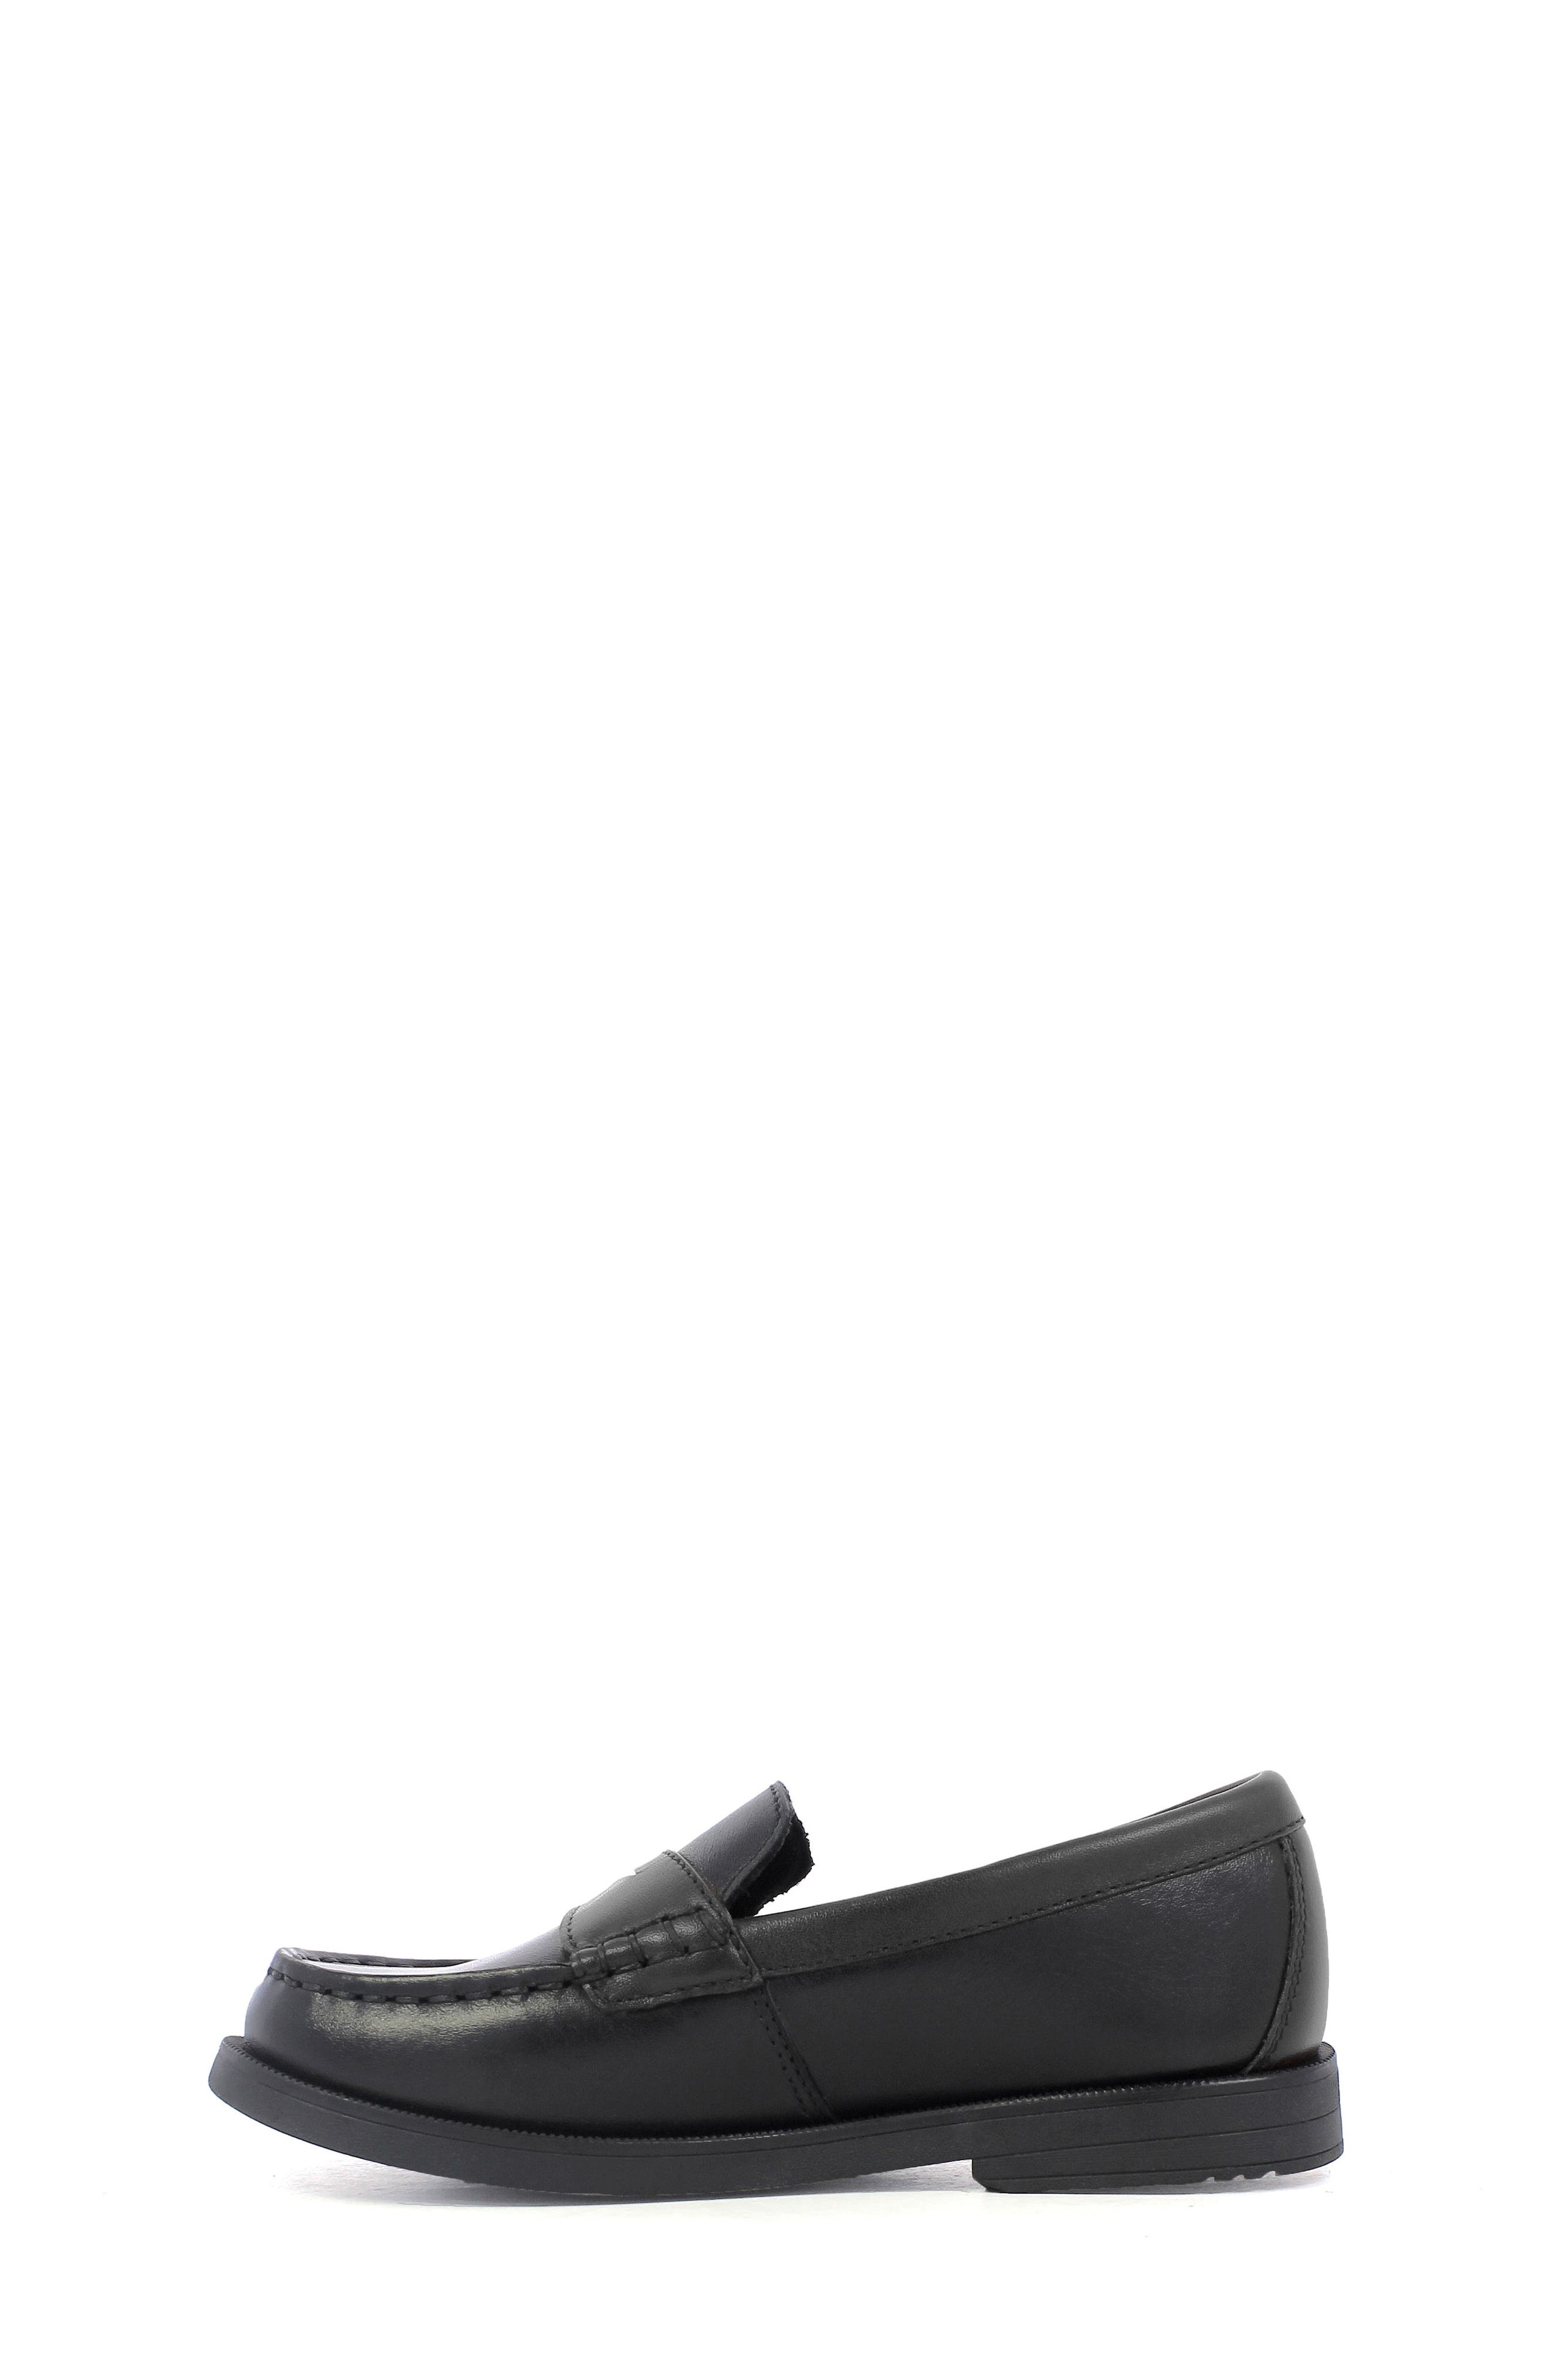 'Croquet' Penny Loafer,                             Alternate thumbnail 7, color,                             BLACK